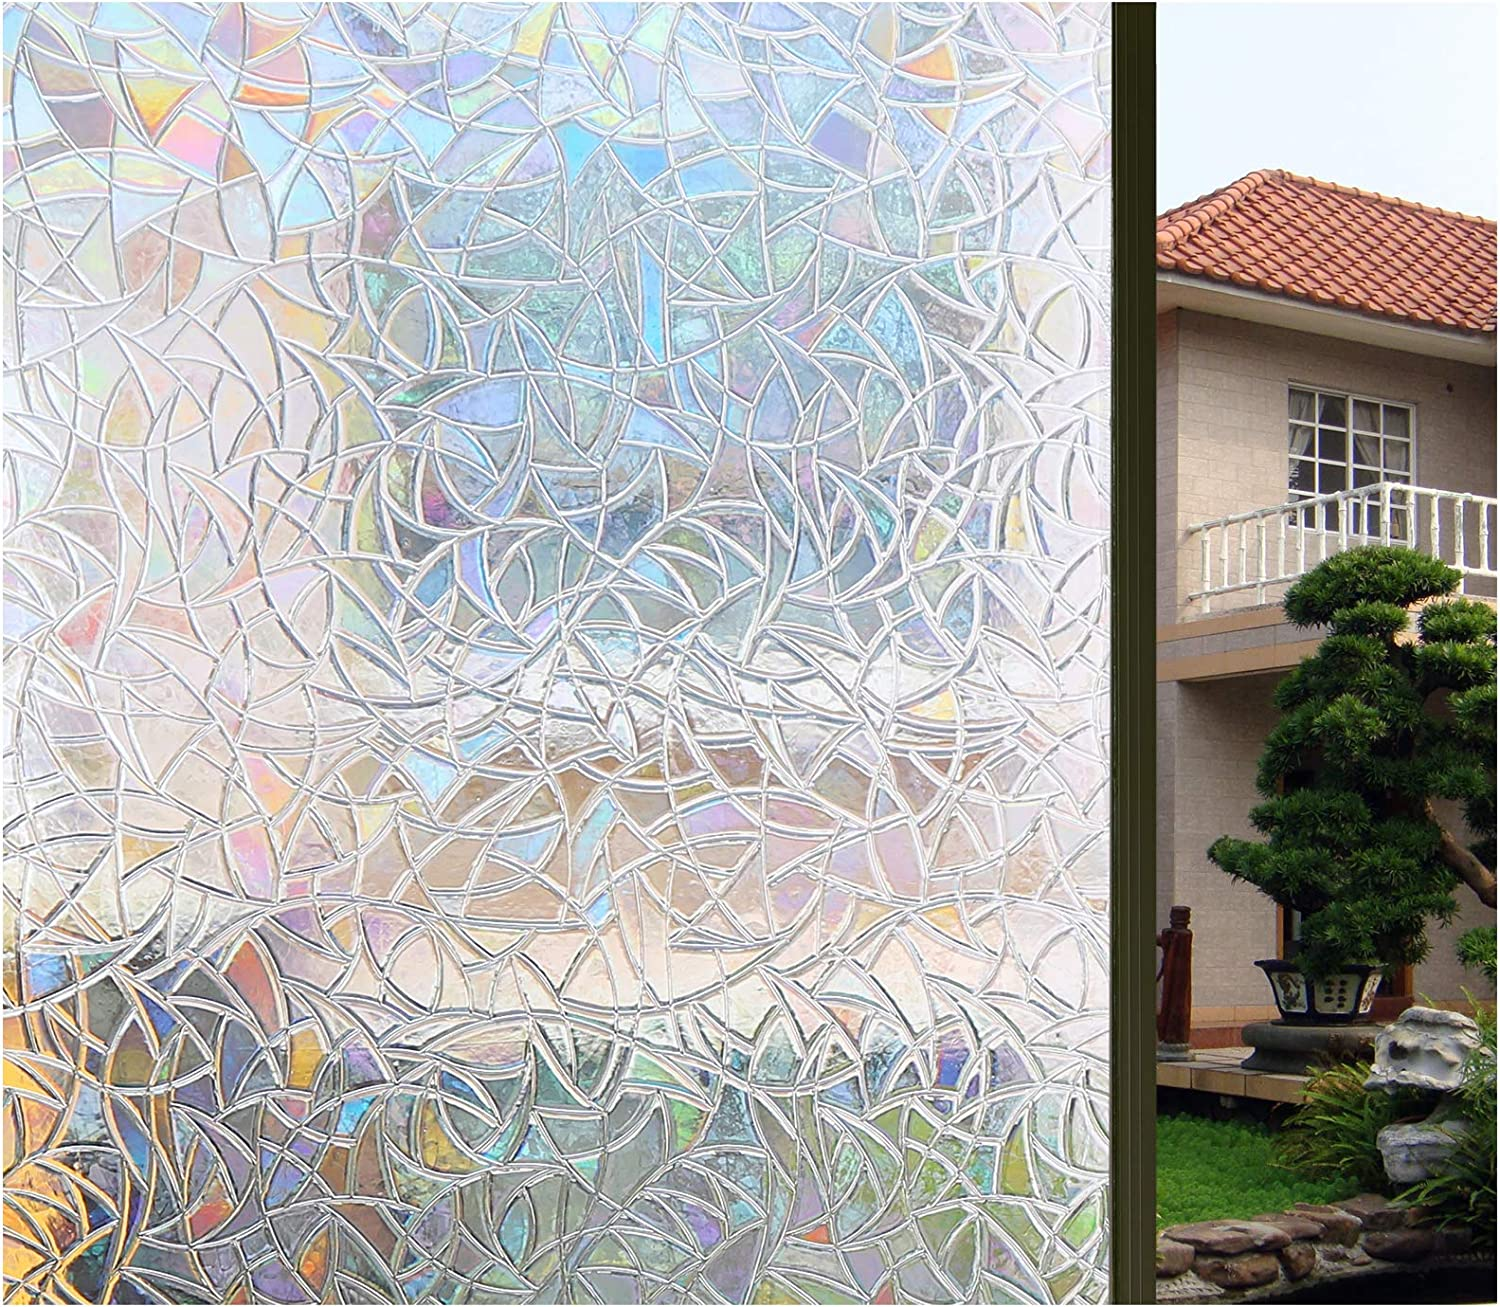 Bloss 3D Window Film Decorative Window Films Stained Glass Film Static Cling Window Film Window Cling No-Glue Heat Control Home Décor, 17.7 by 78.7 Inches